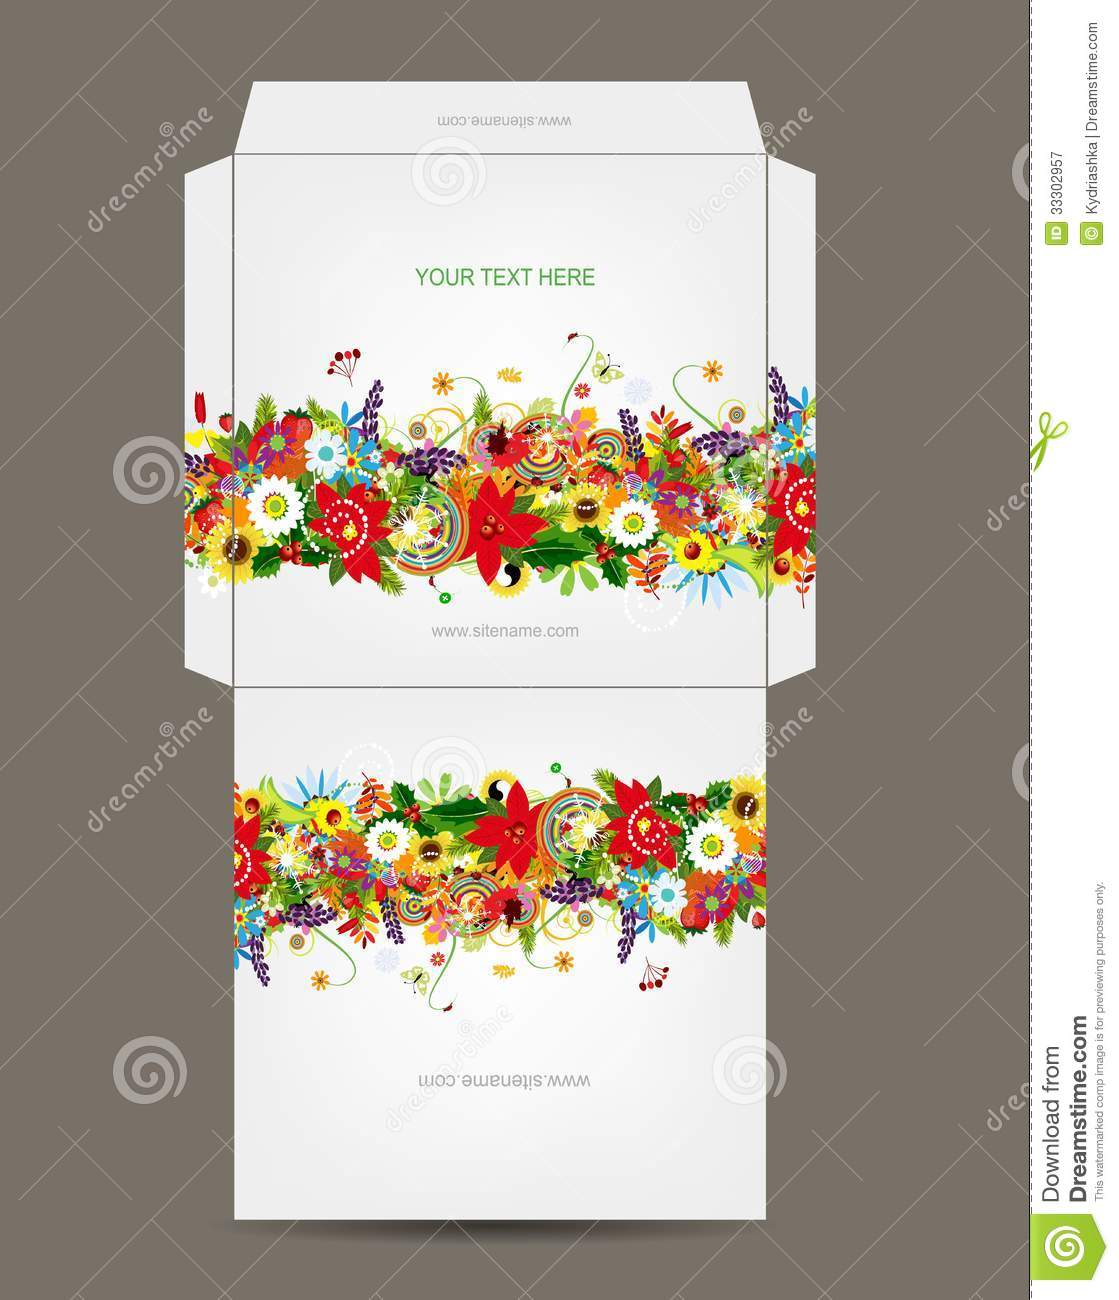 Envelope template floral design stock vector illustration of envelope template floral design spiritdancerdesigns Choice Image